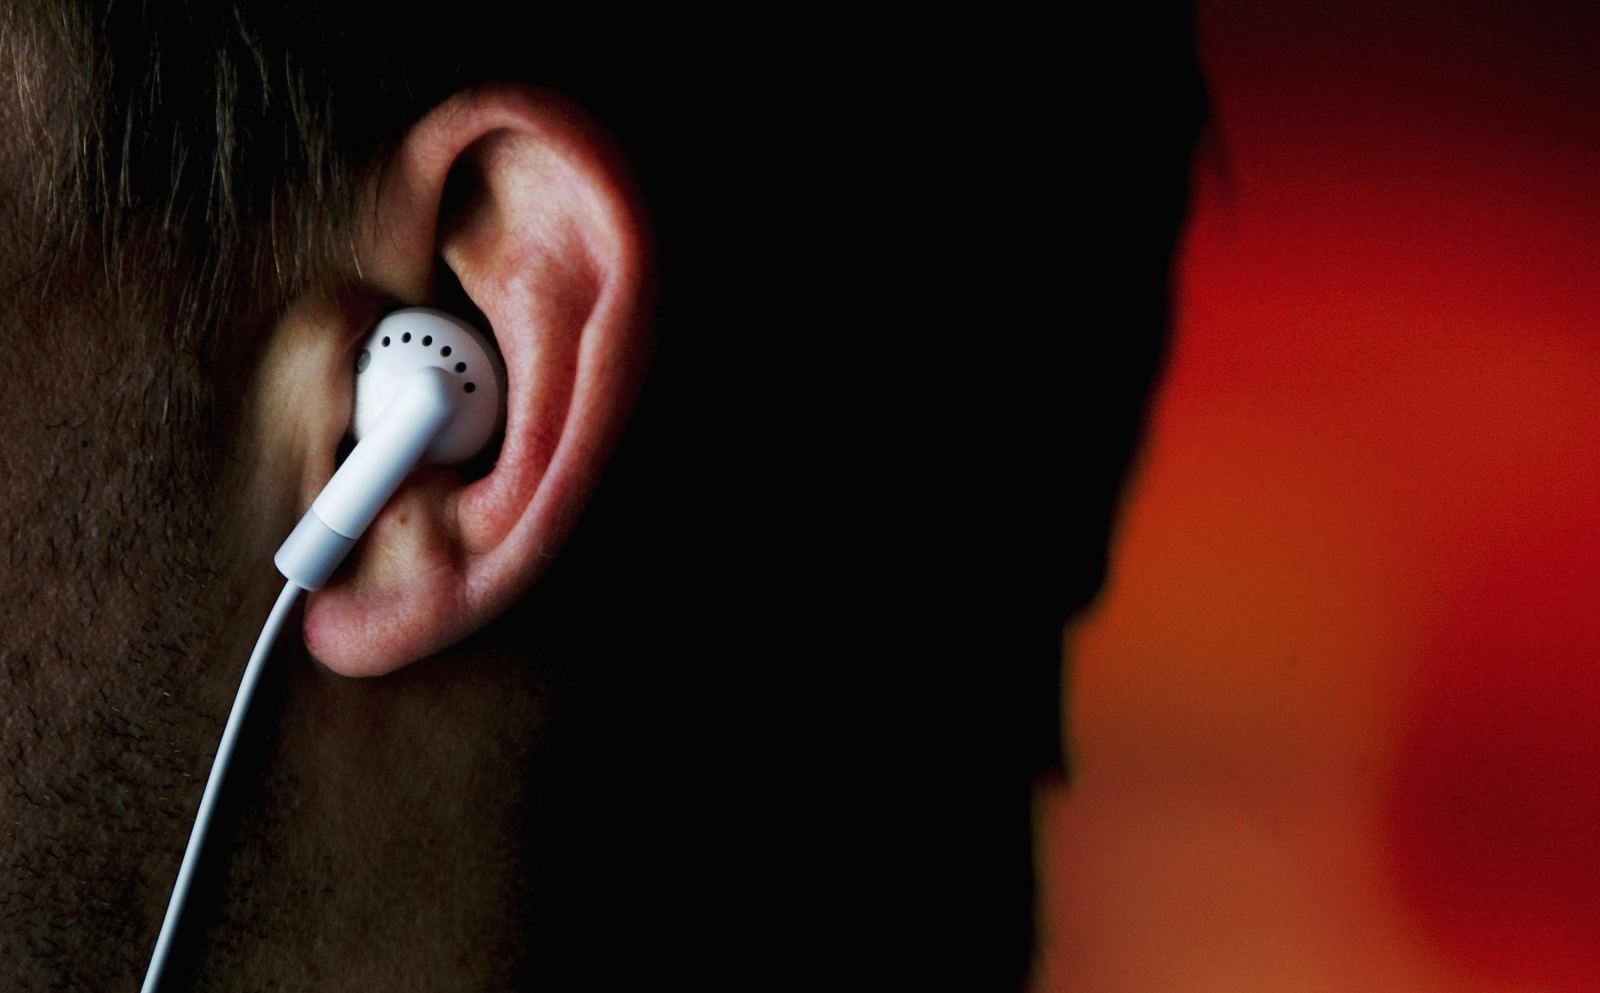 Apple working on wireless earbuds